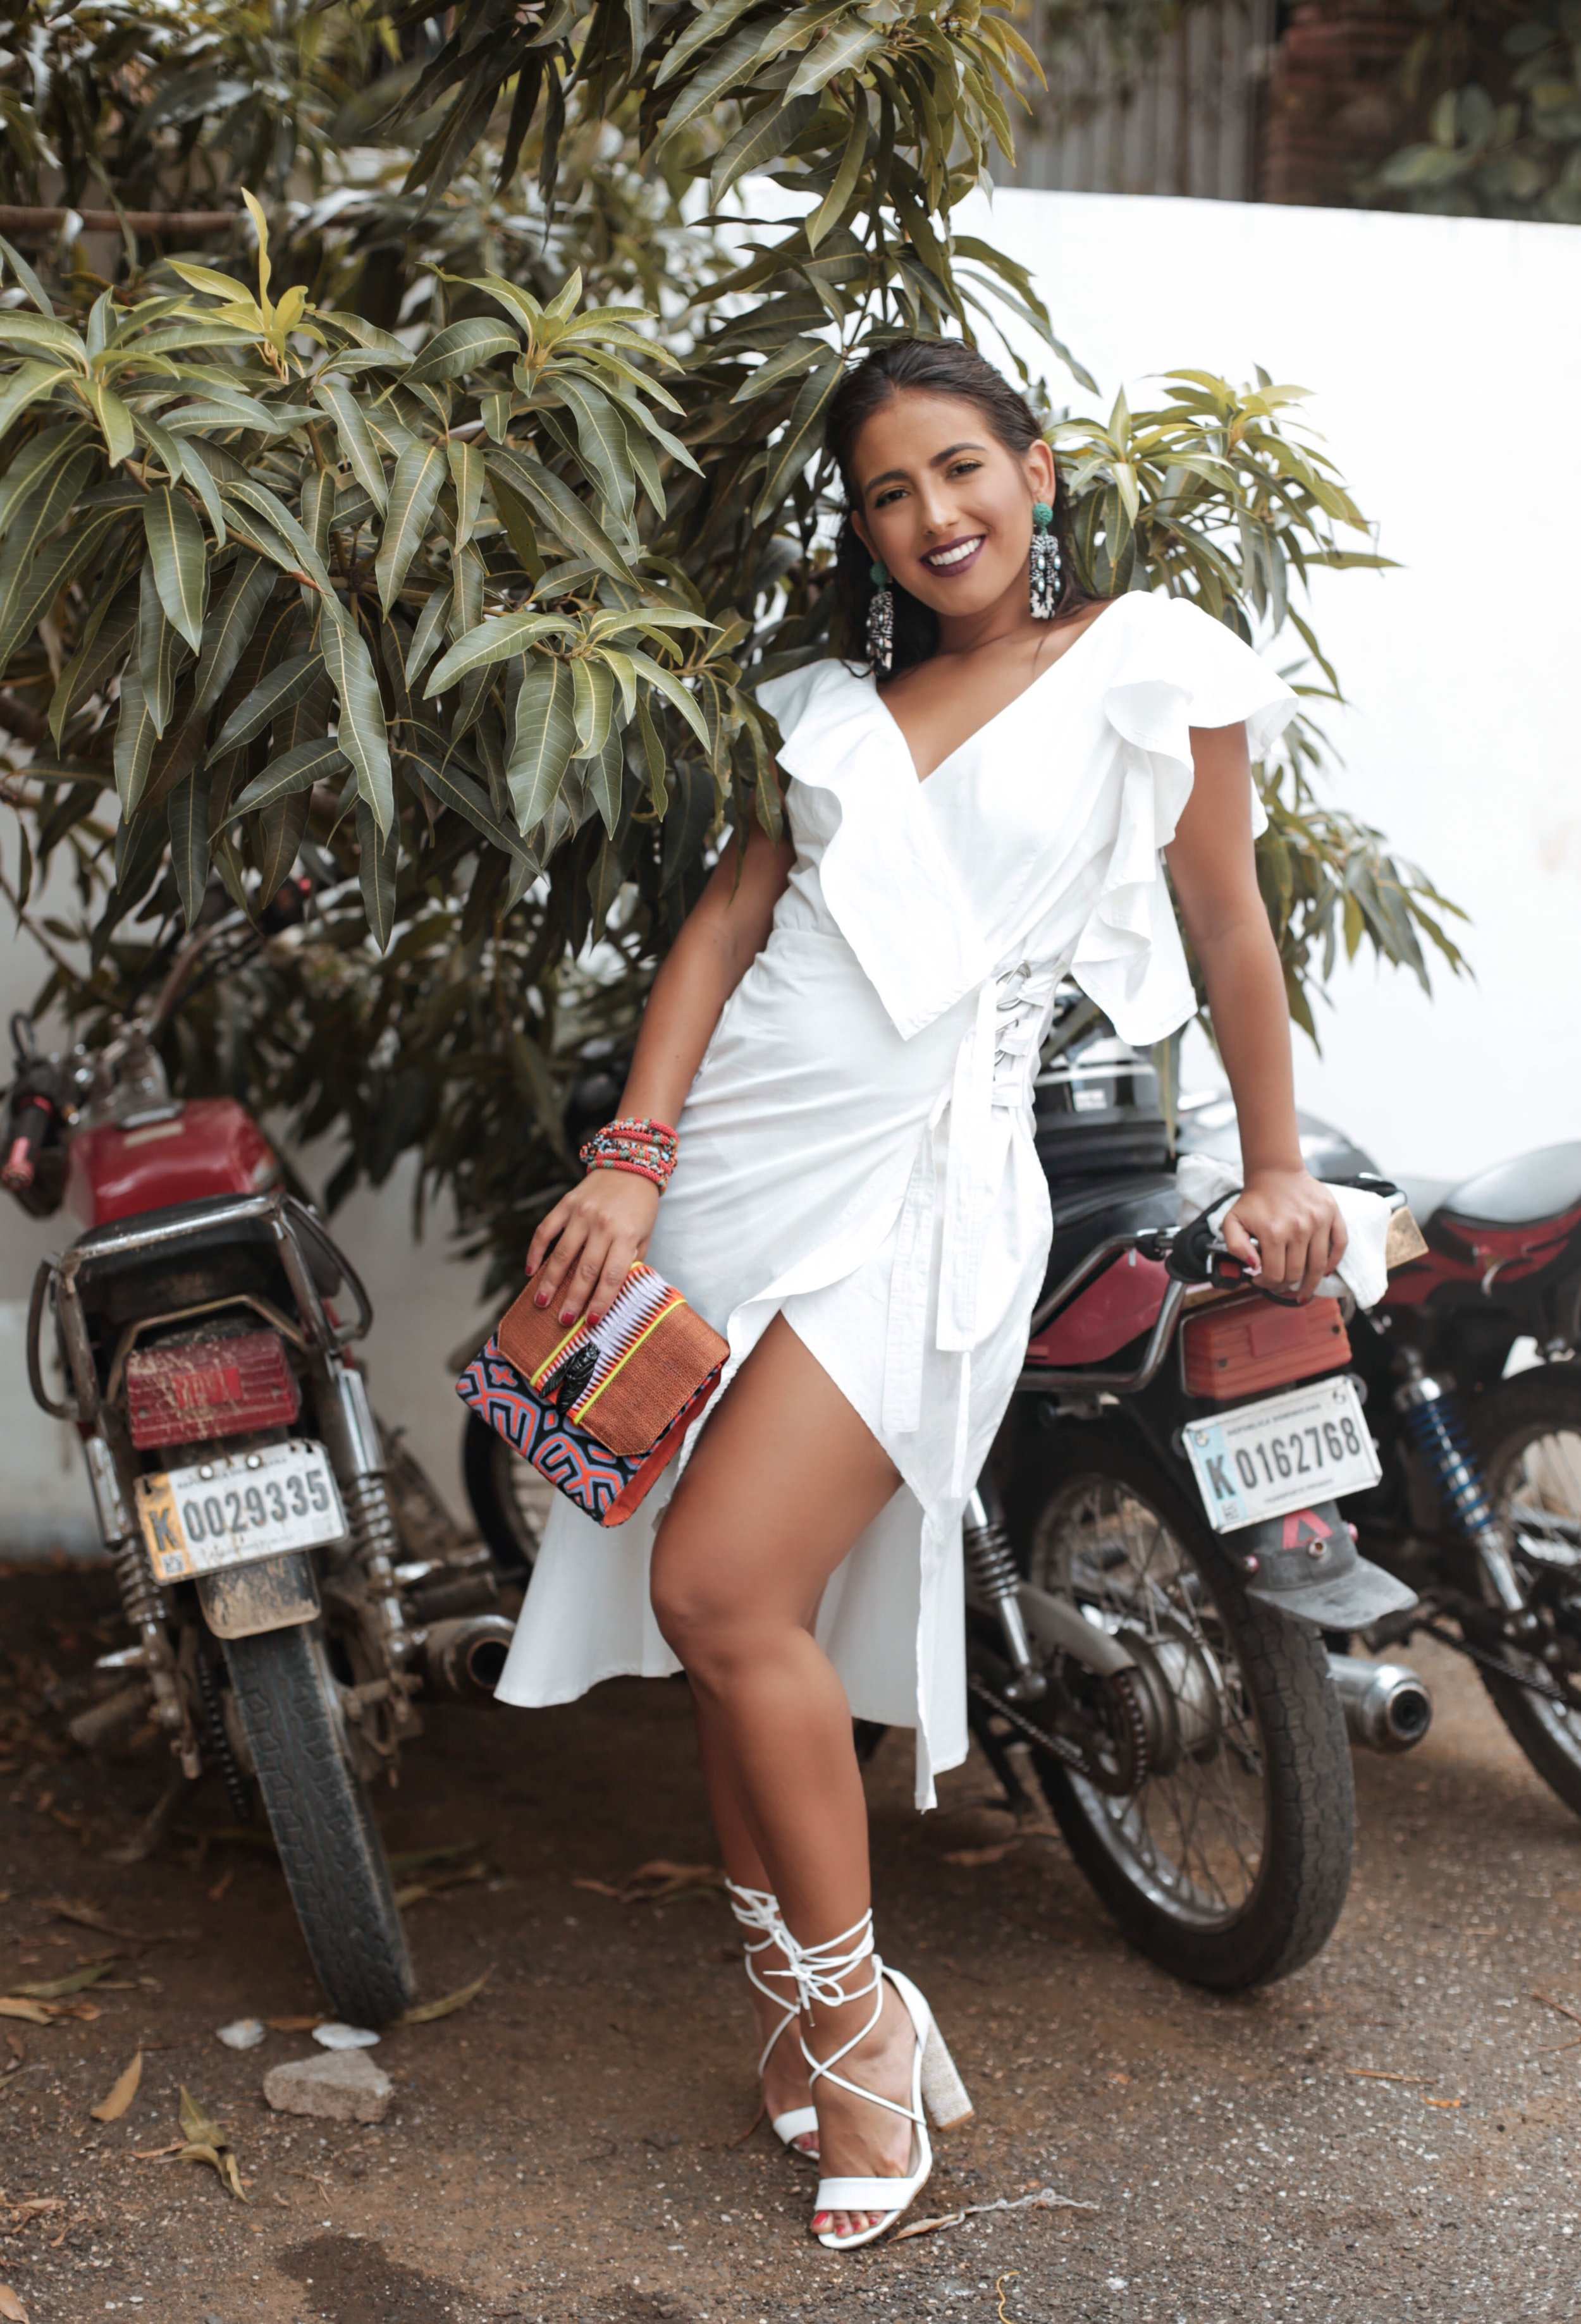 fashion travel blogger trends positive vibes coolness dominican coolness entrepreneur empowerment